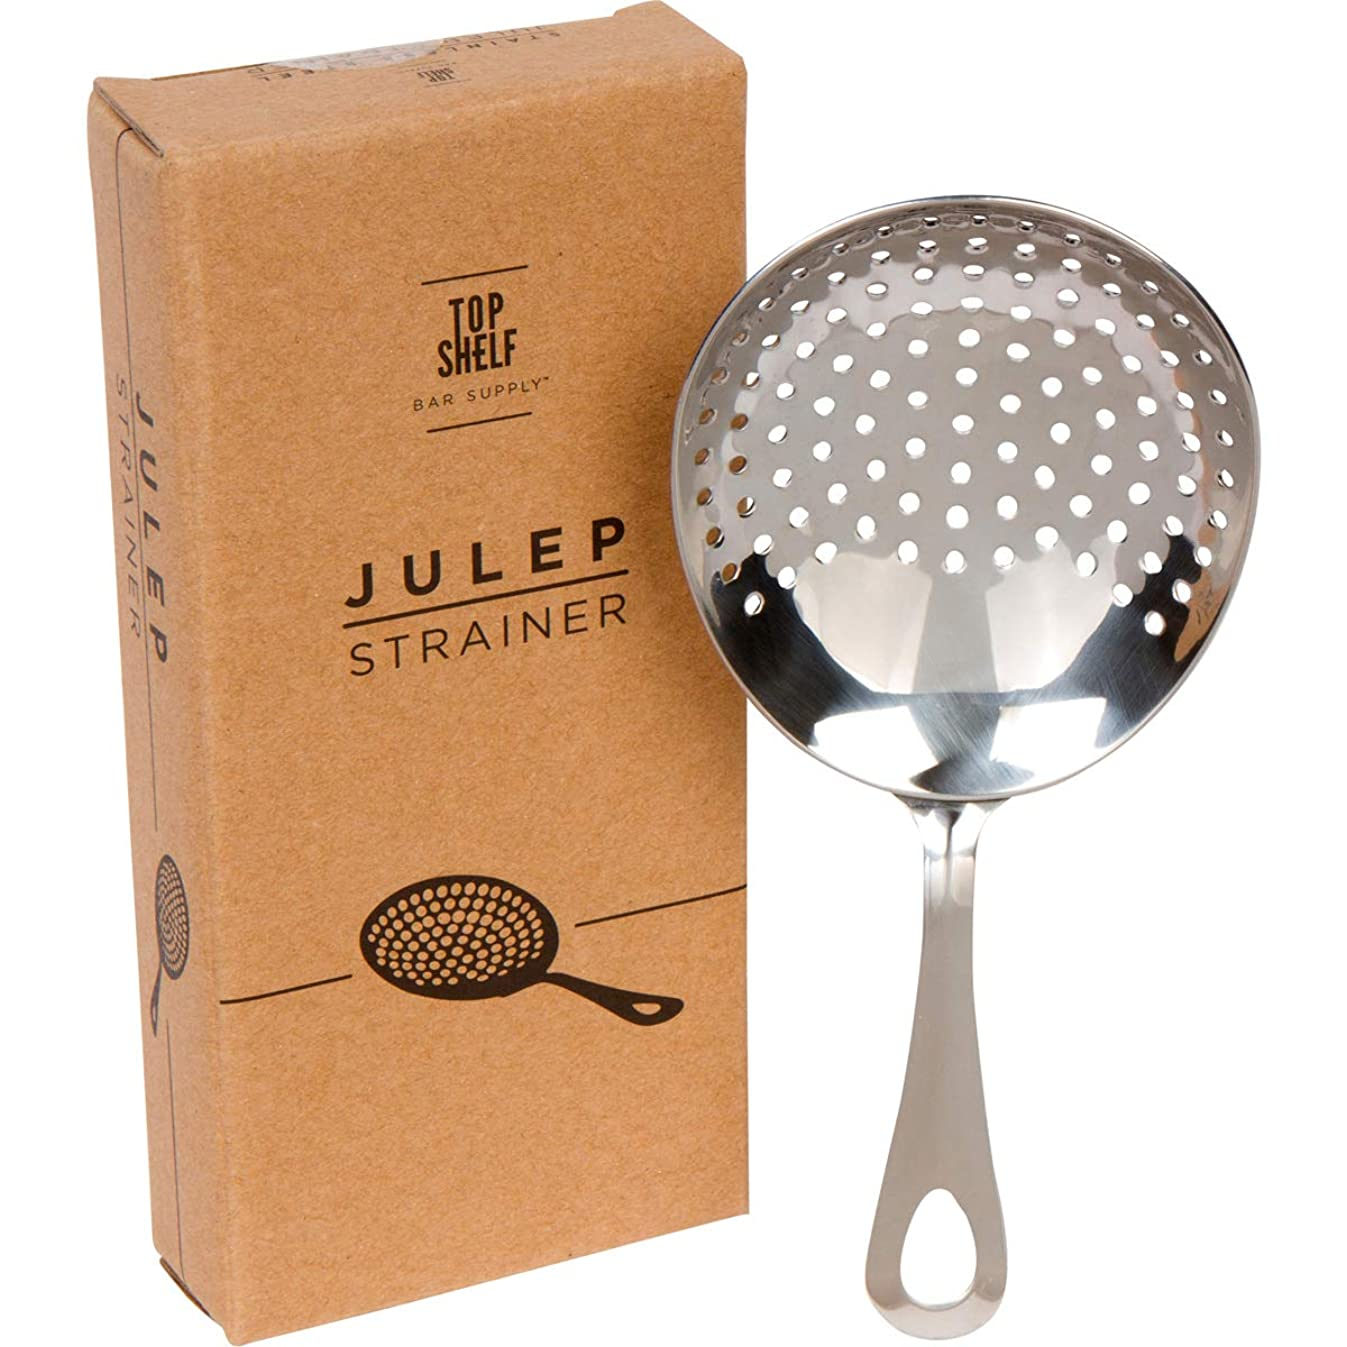 Julep Strainer: Stainless Steel SS304 Cocktail Strainer by Top Shelf Bar Supply